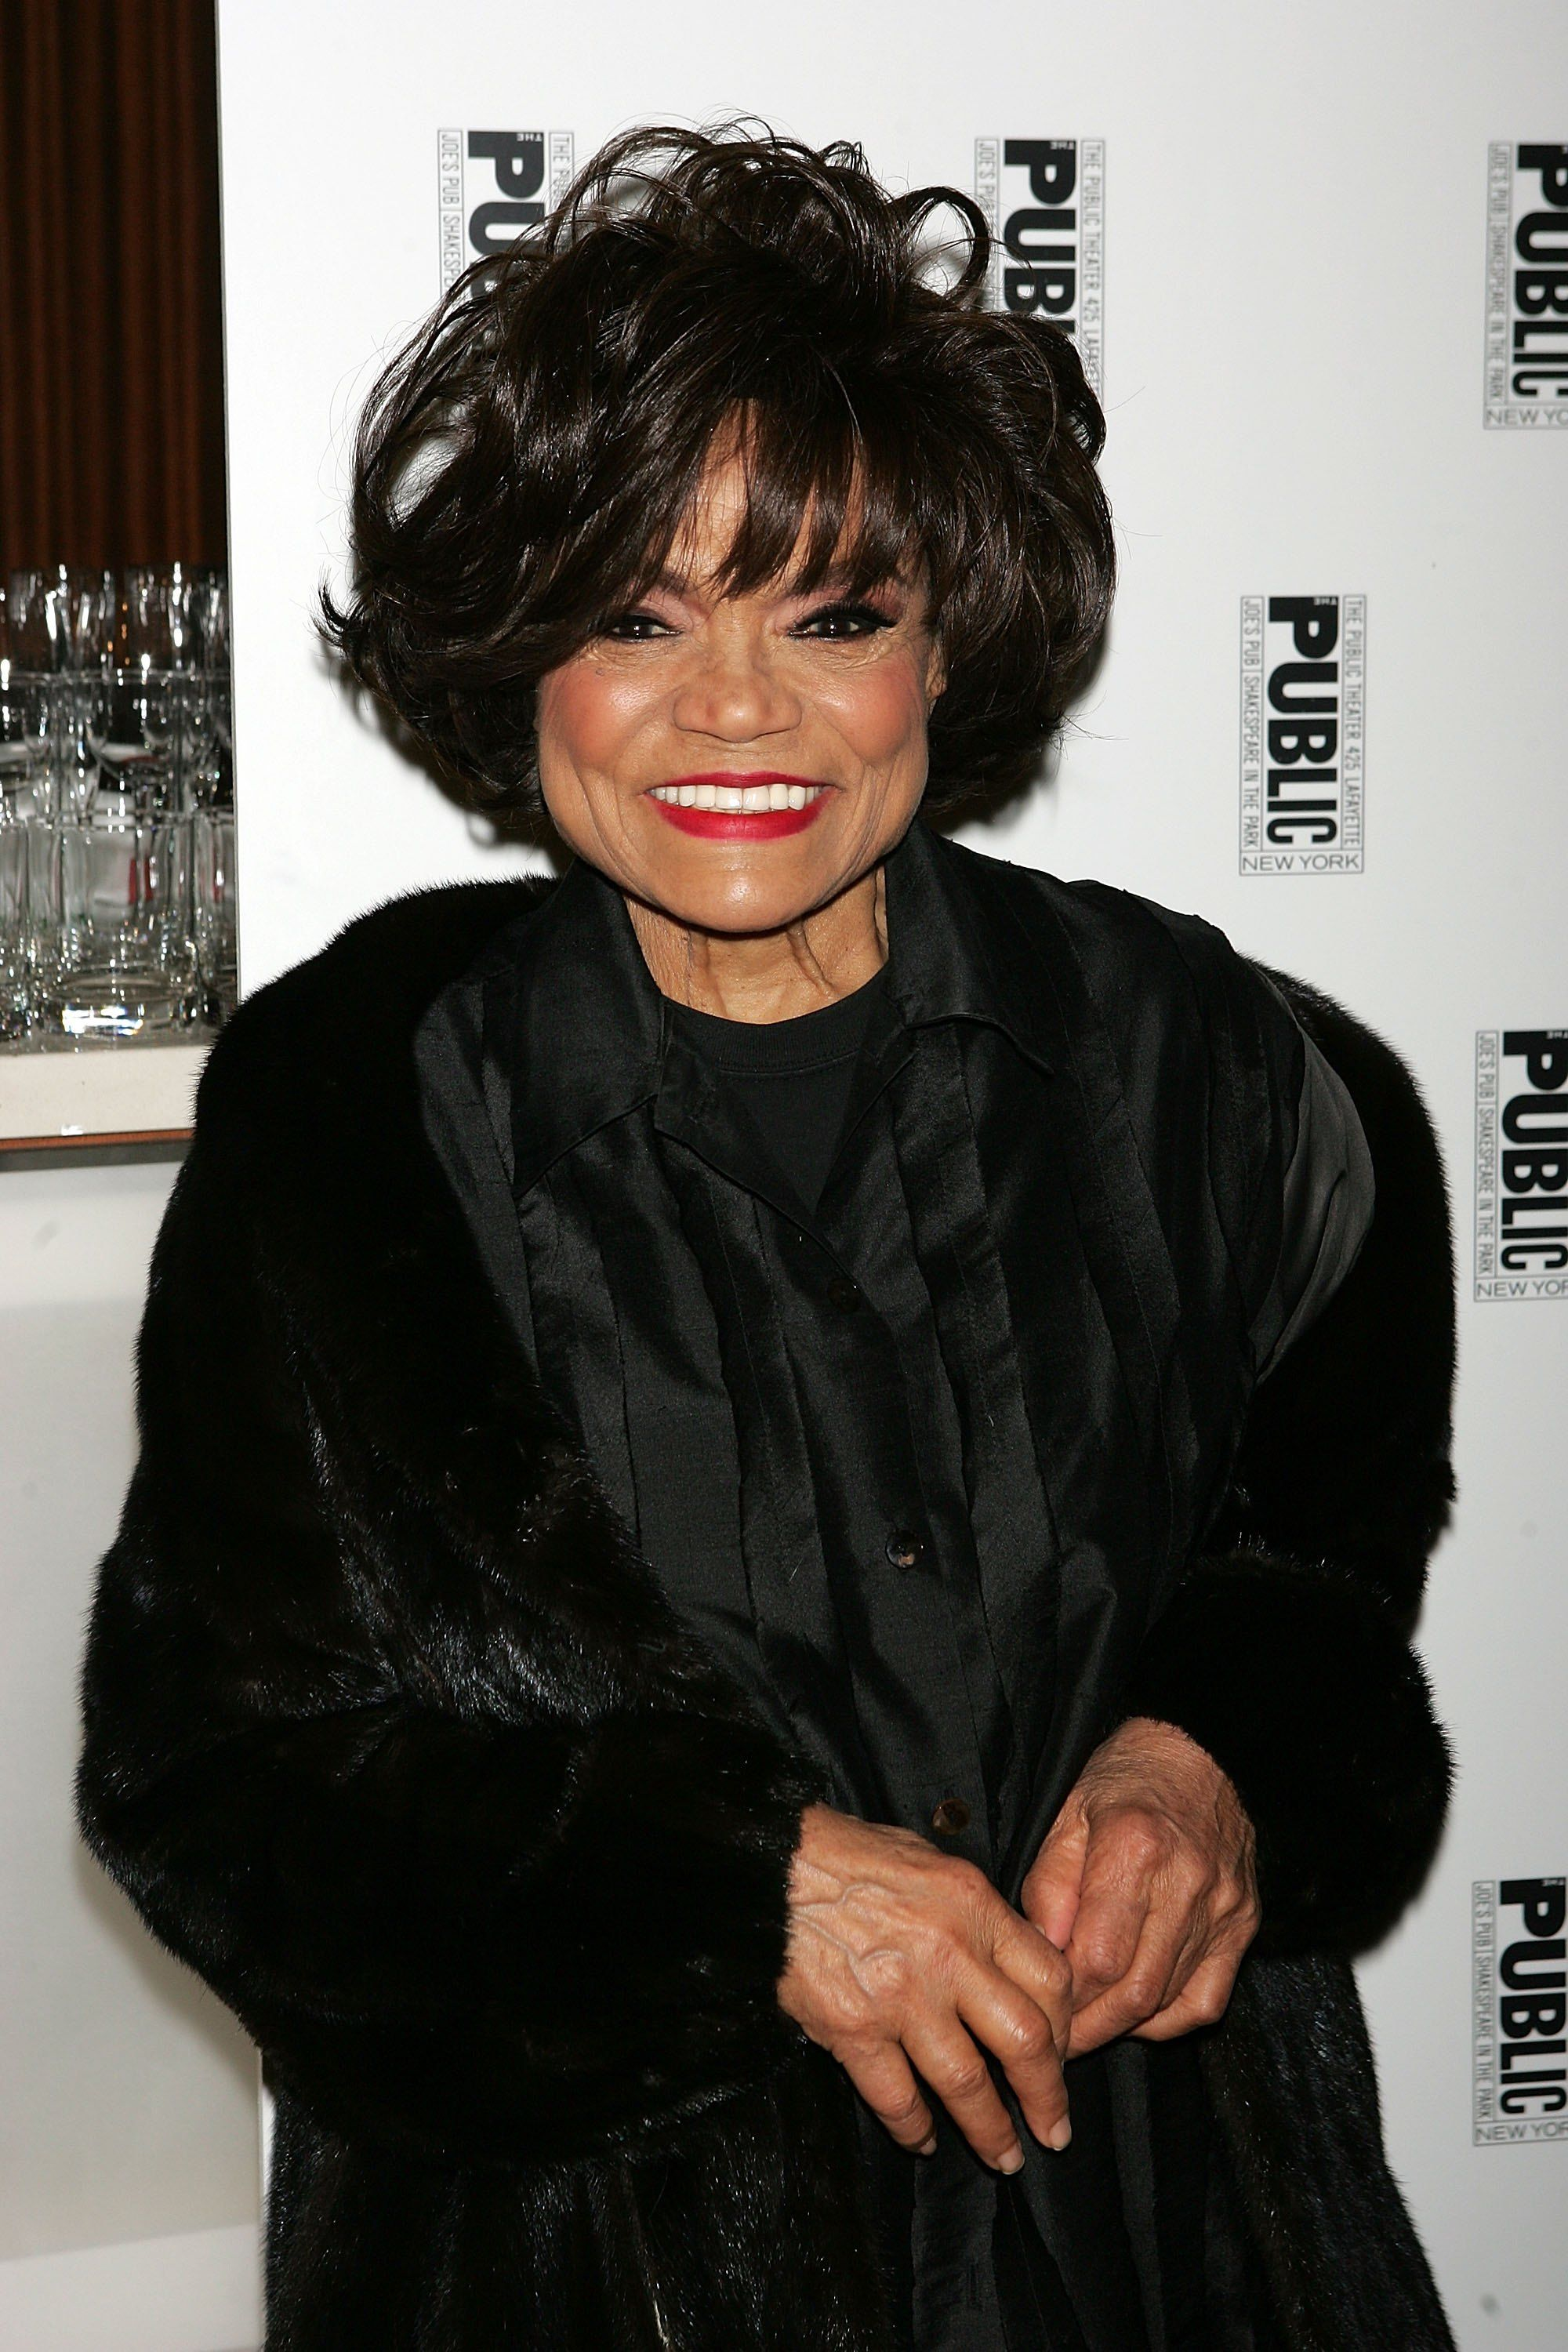 """Eartha Kitt at the after-party for """"The Public Sings: A 50th Anniversary Celebration"""" at the Time Warner Center on January 30, 2006 in New York City 